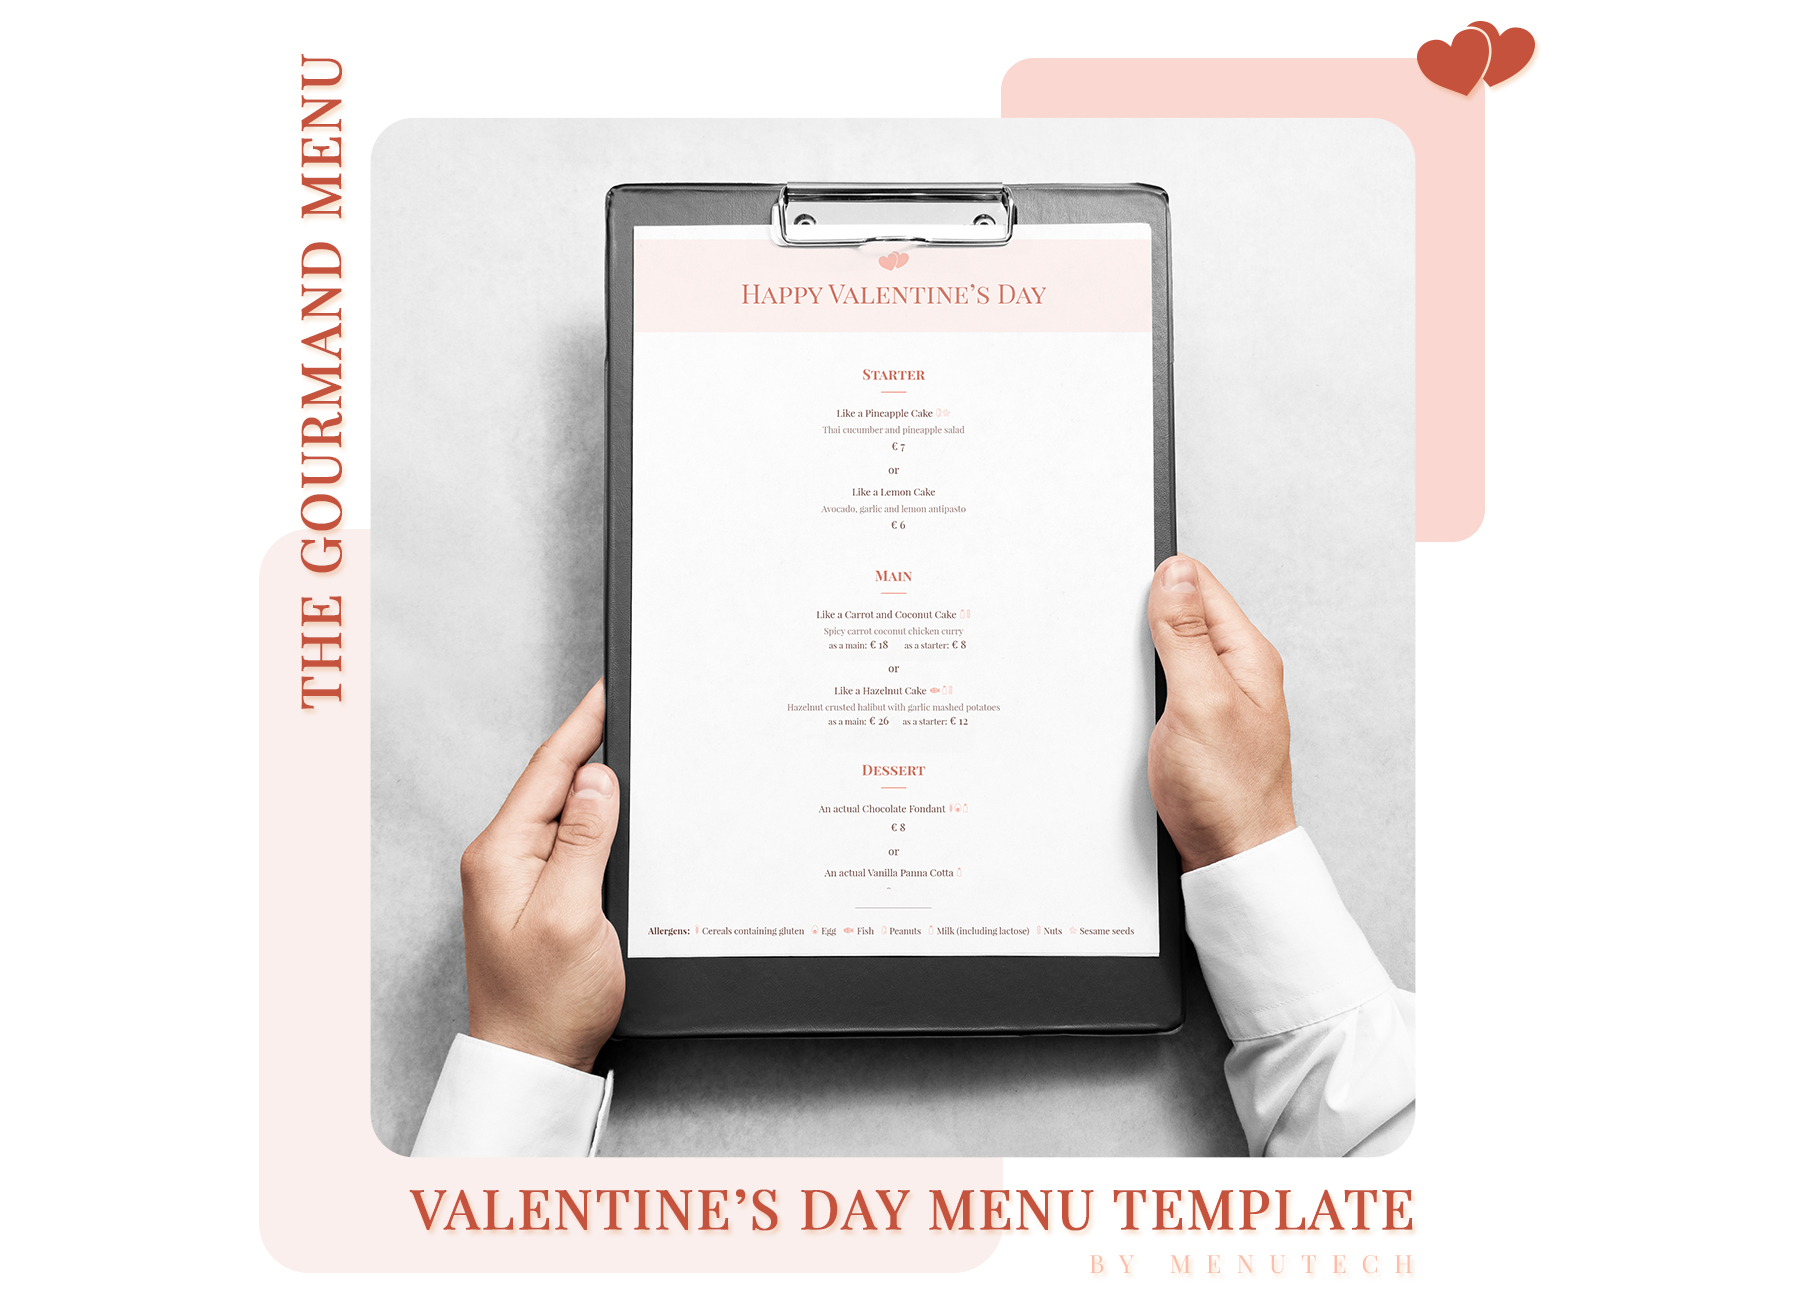 Menutech Gourmand Valentine's Day Menu